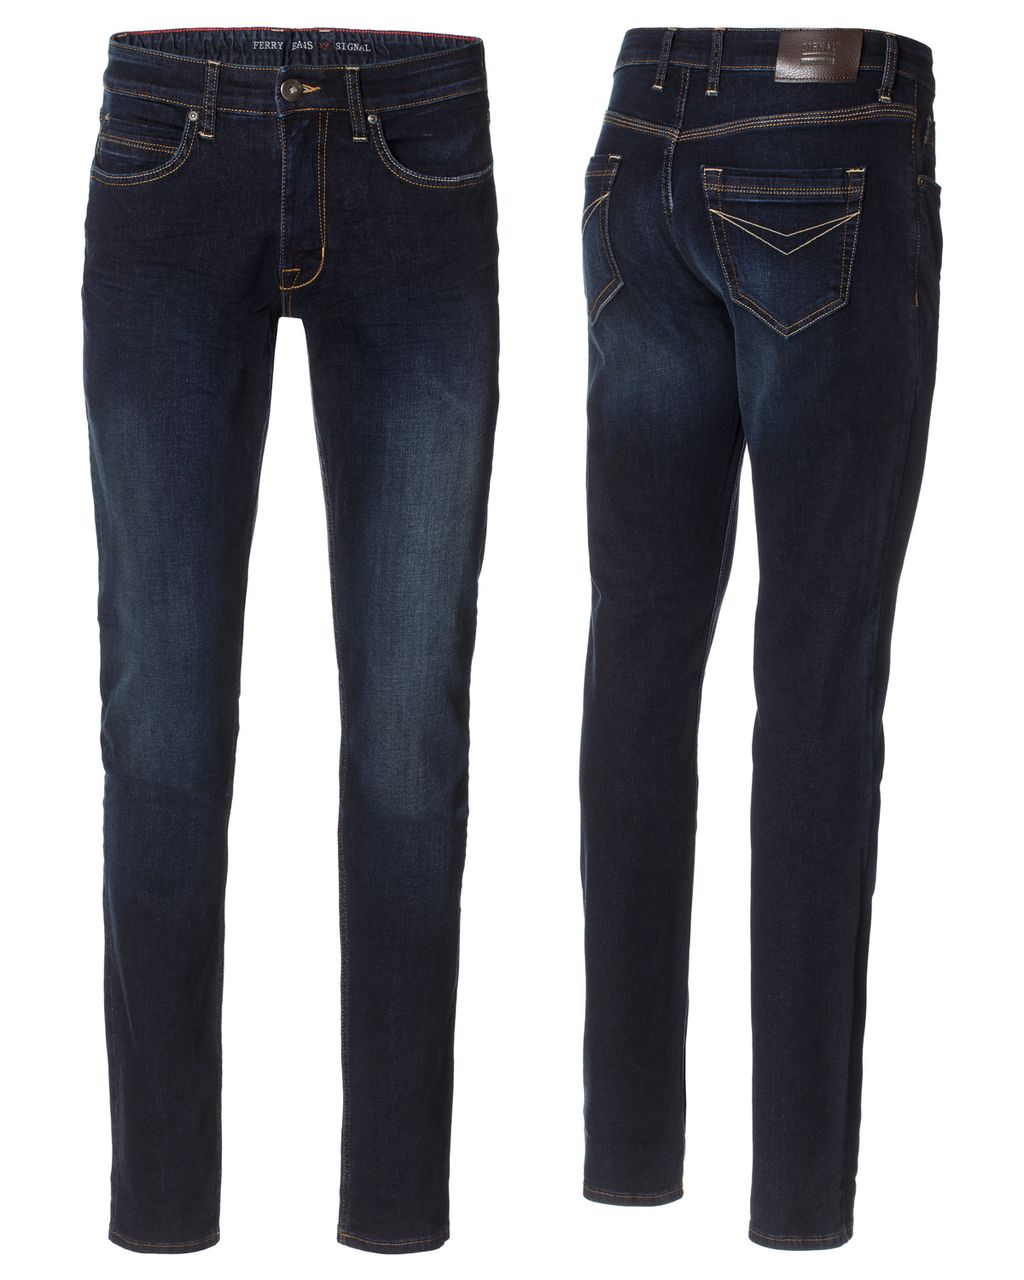 79ca5a57 Ferry Denim Jeans Regular Fit Jeans - Stylepit | reve